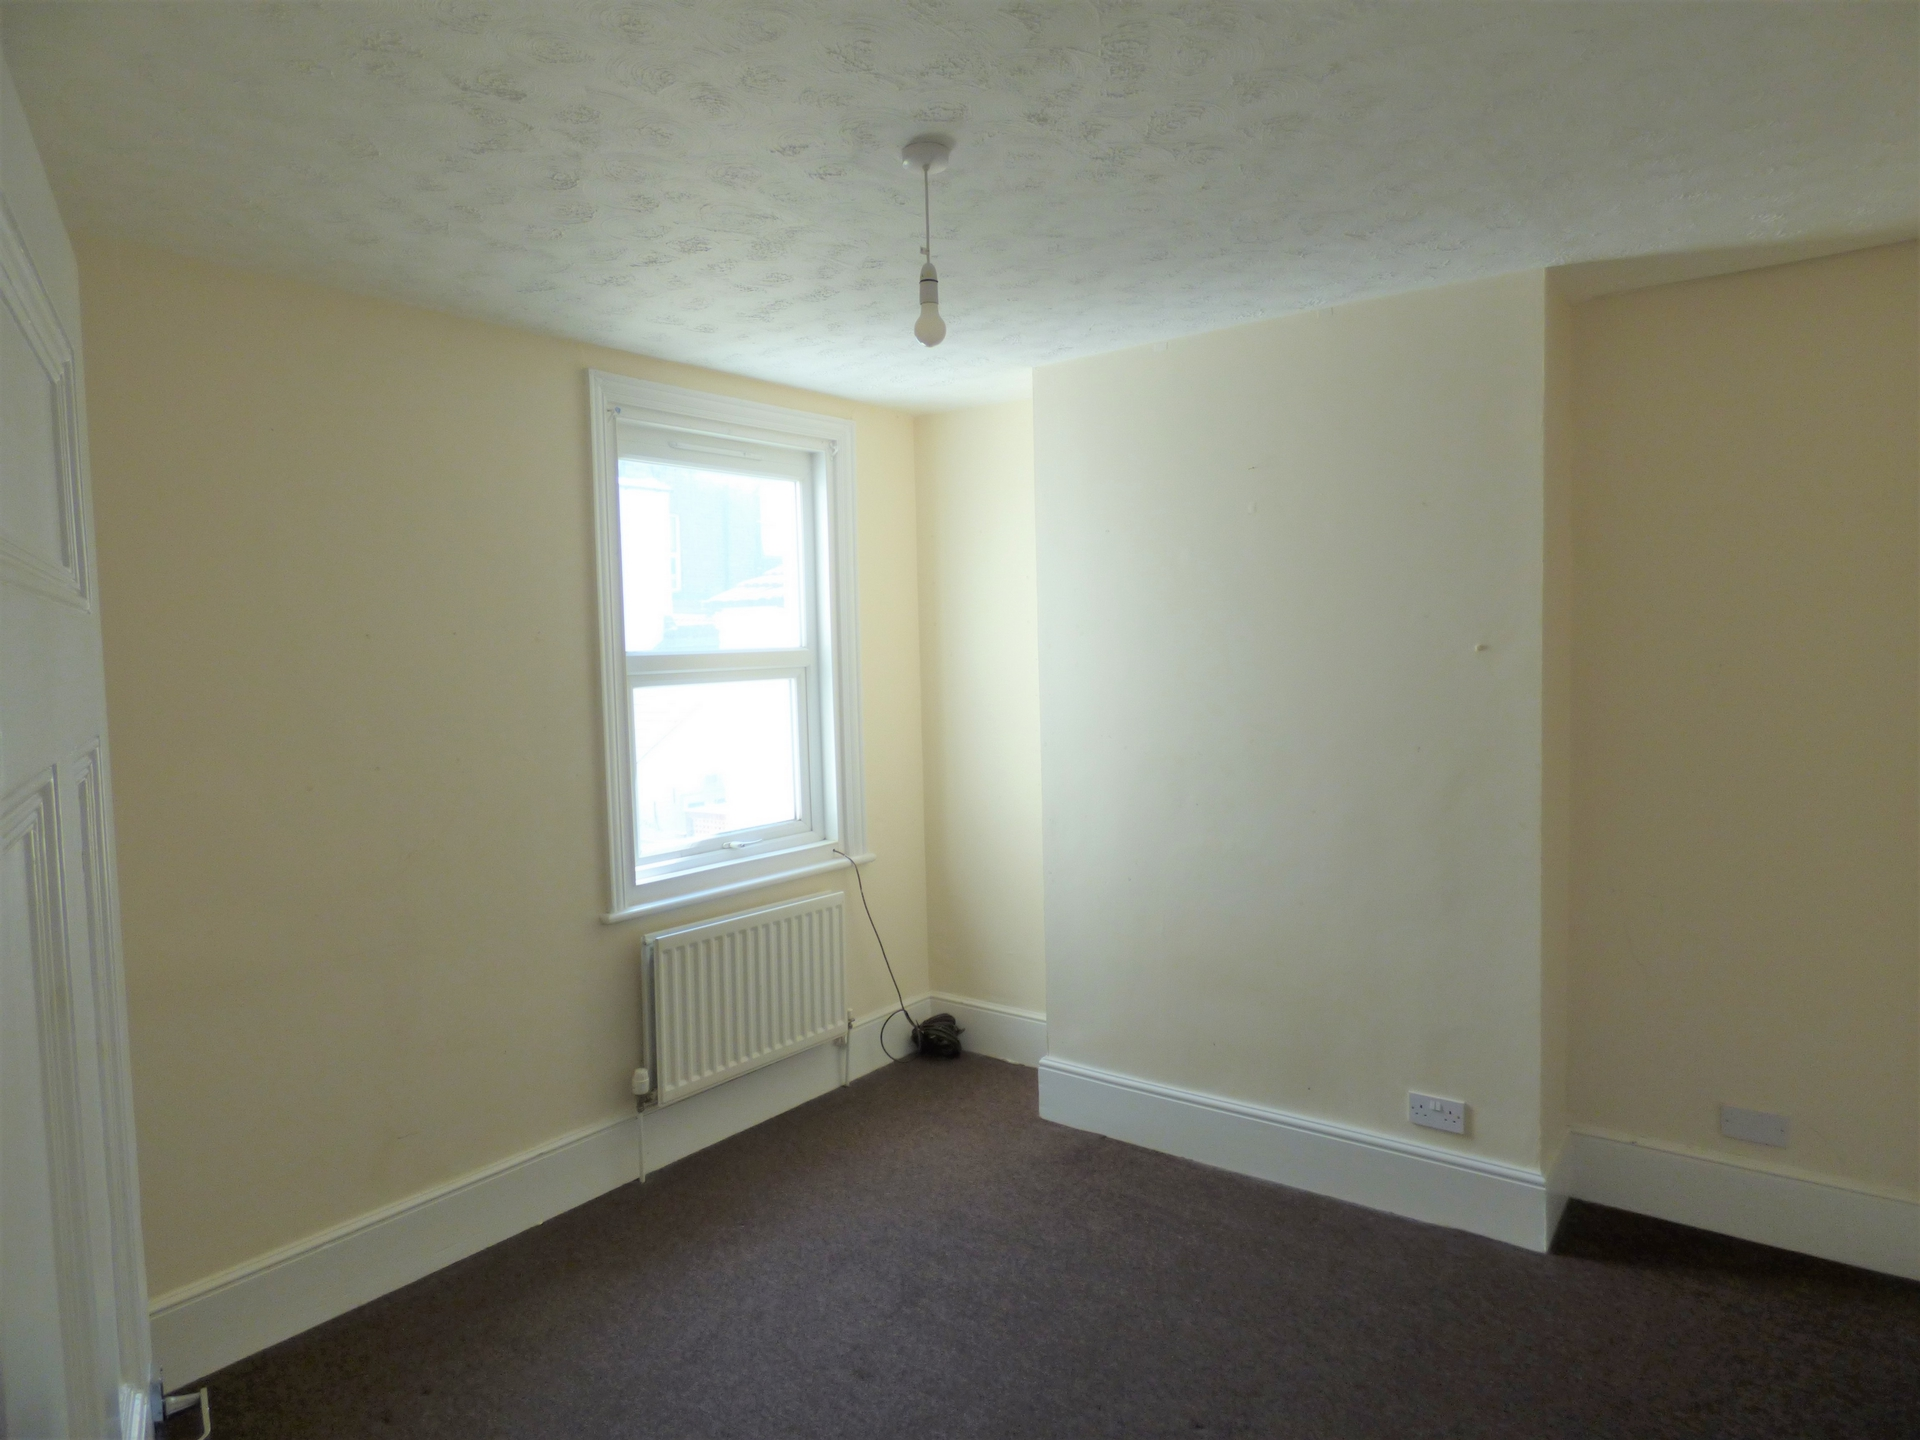 4 bed end of terrace house for sale in Crescent Road, Margate  - Property Image 6